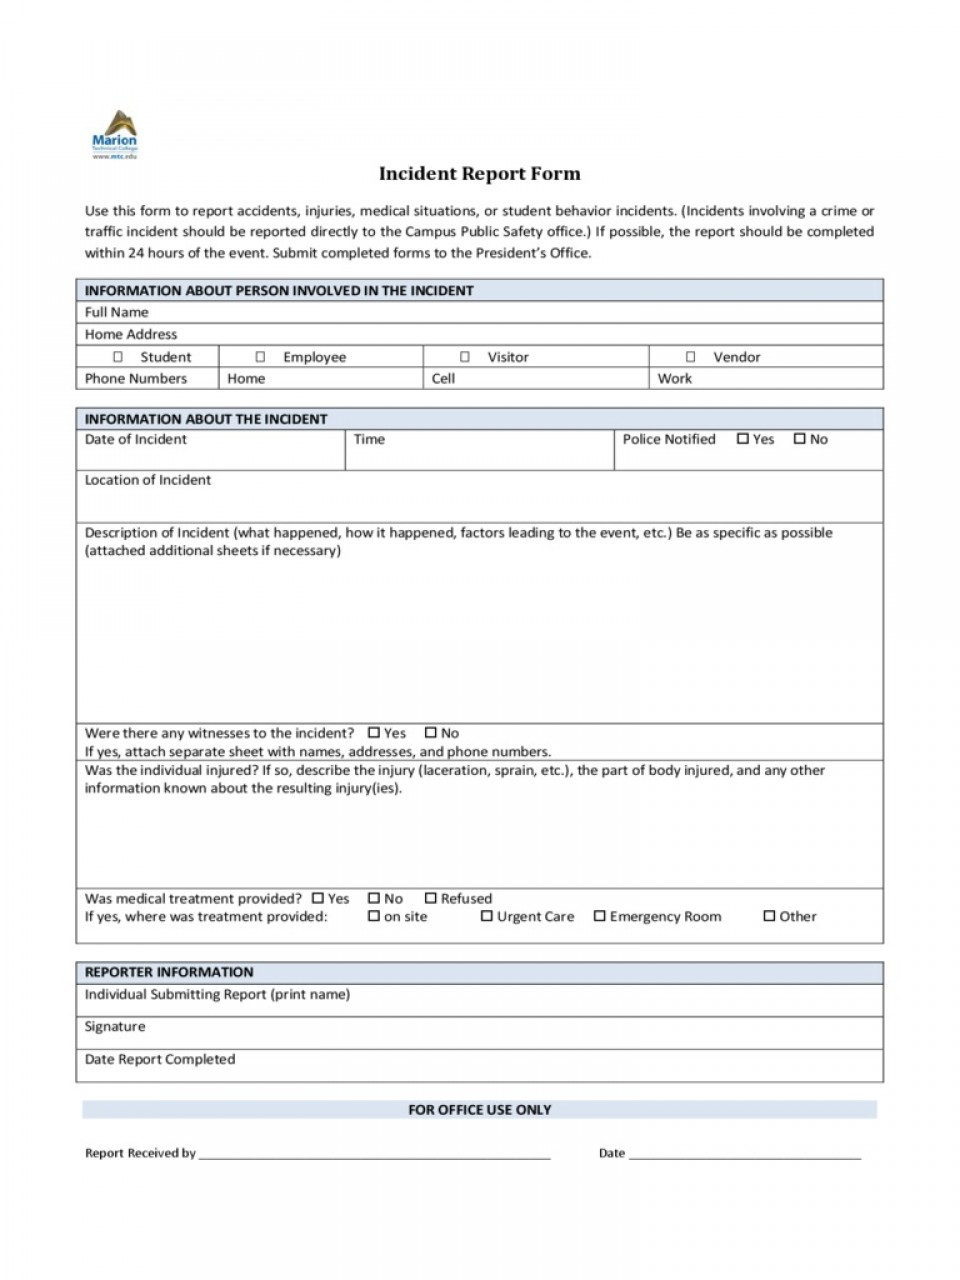 Incident Report Form Template Word Policeincident Marion Technical College  Downloadable Free960